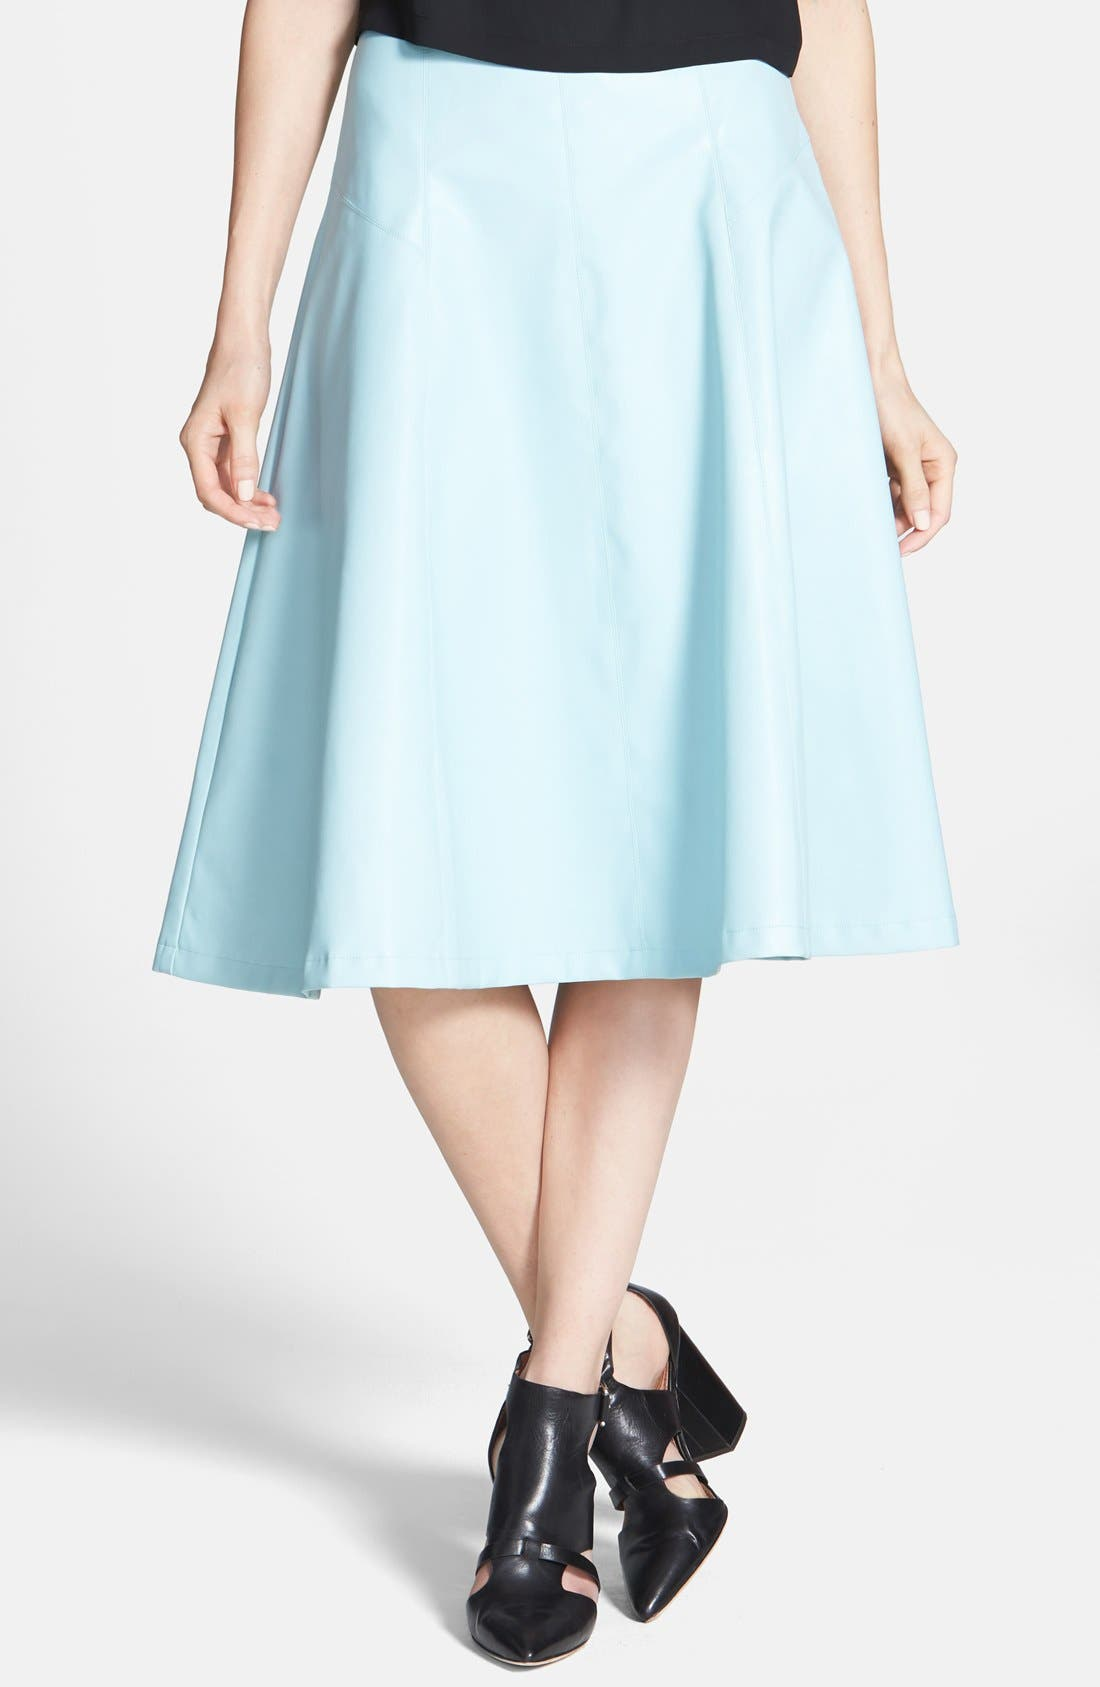 Main Image - ASTR Faux Leather A-Line Midi Skirt